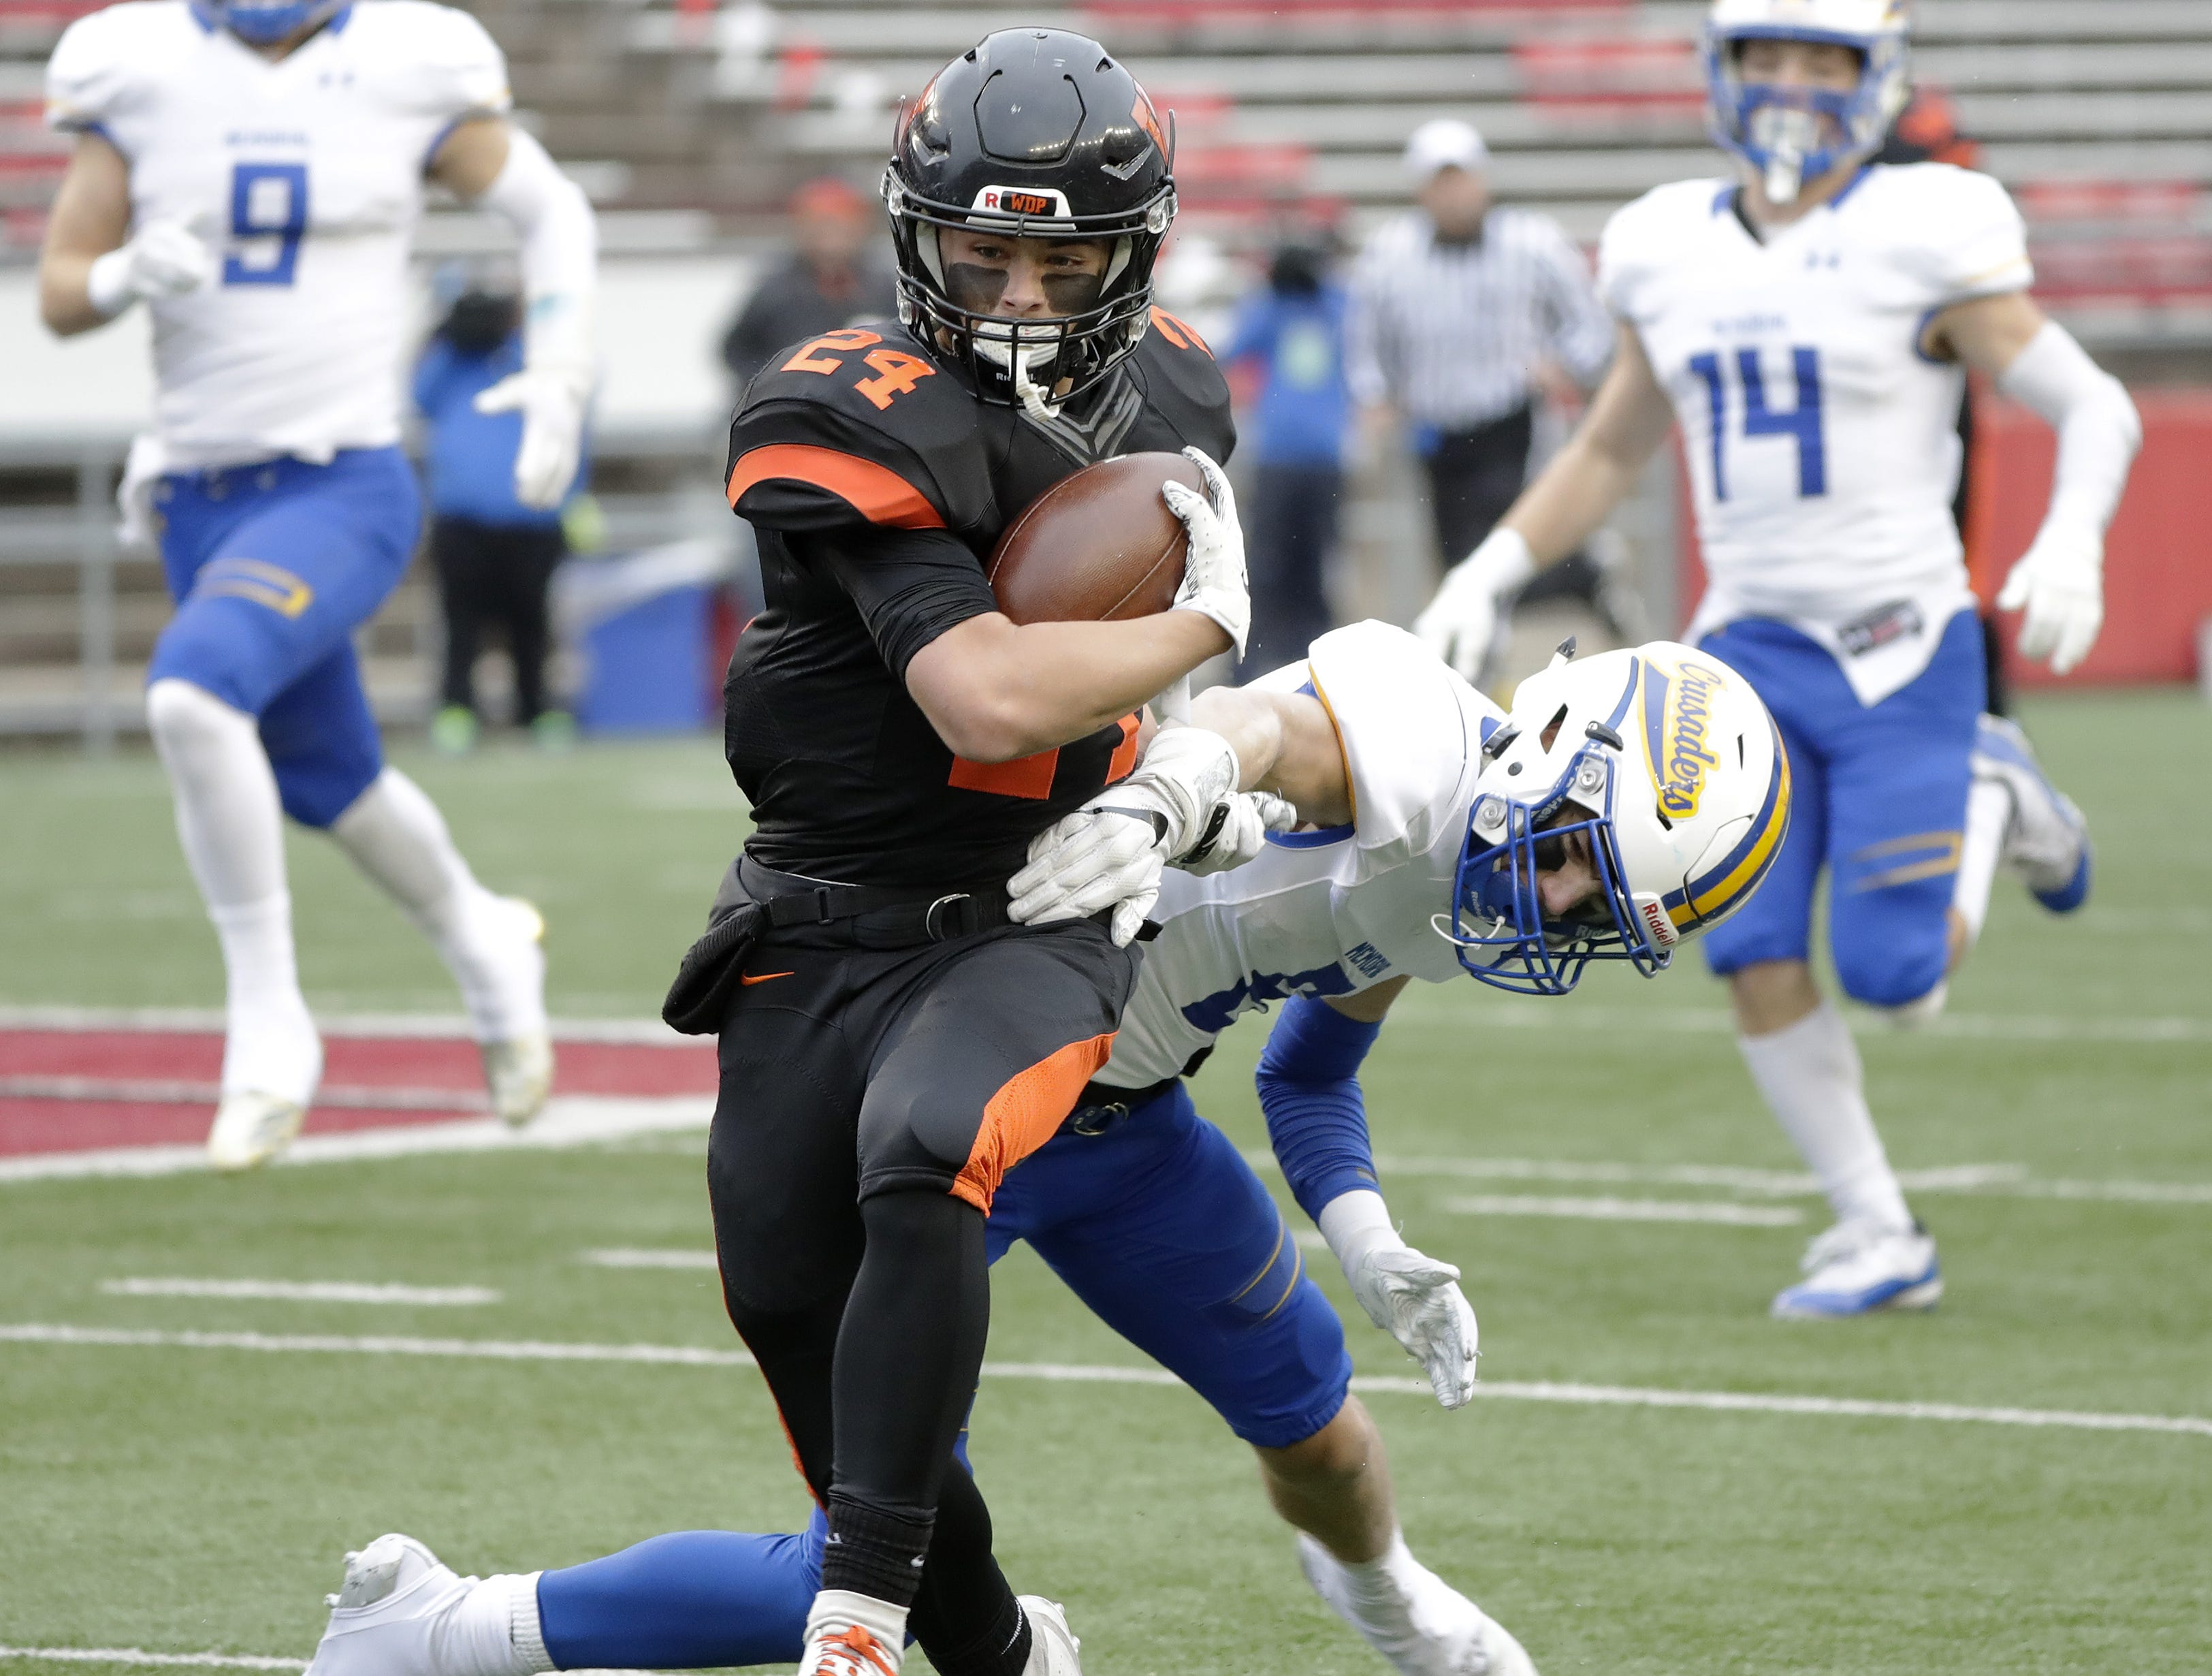 West De Pere's Sam Mommaerts (24) runs after a catch against Catholic Memorial in the WIAA Division 3 championship game at Camp Randall Stadium on Friday, November 16, 2018 in Madison, Wis.